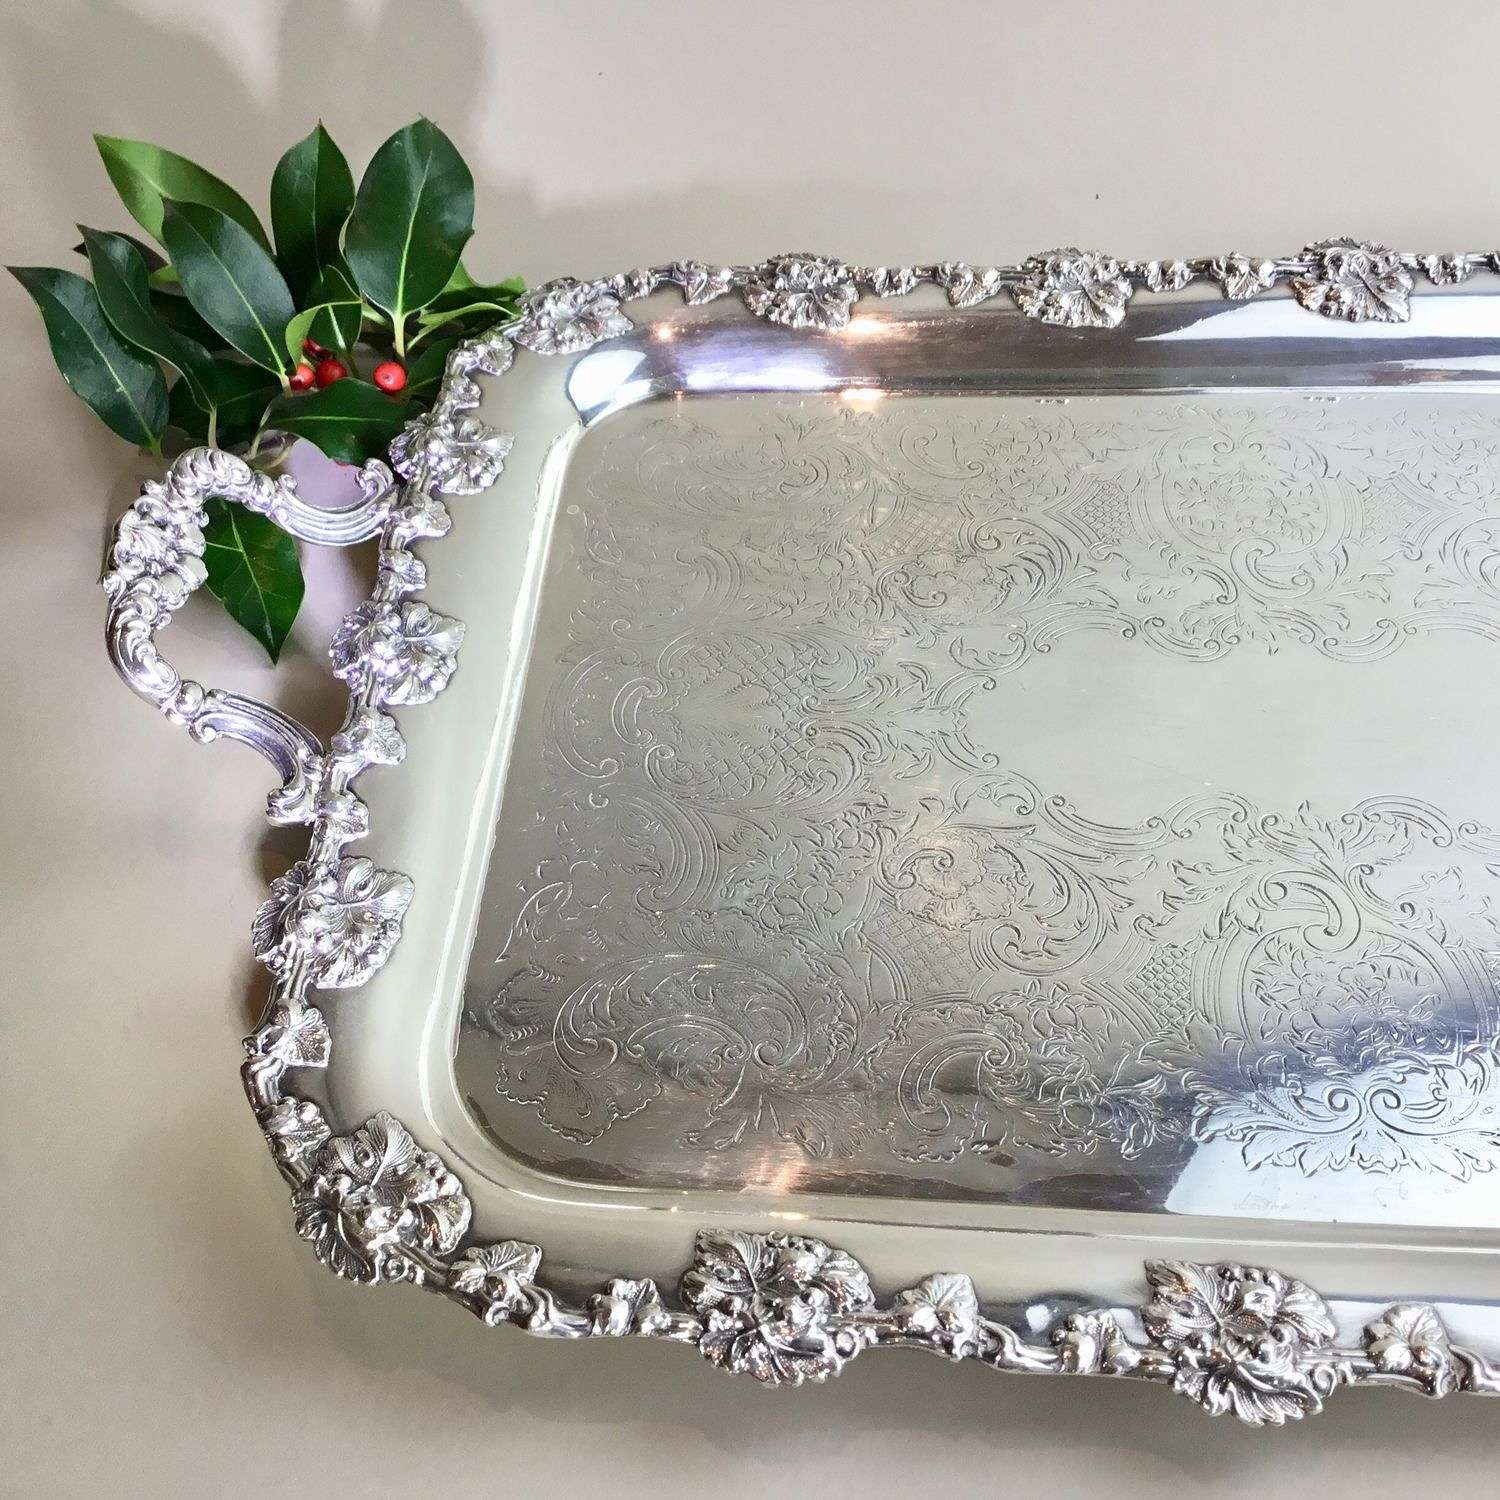 Excellent quality silver plated two handled tray